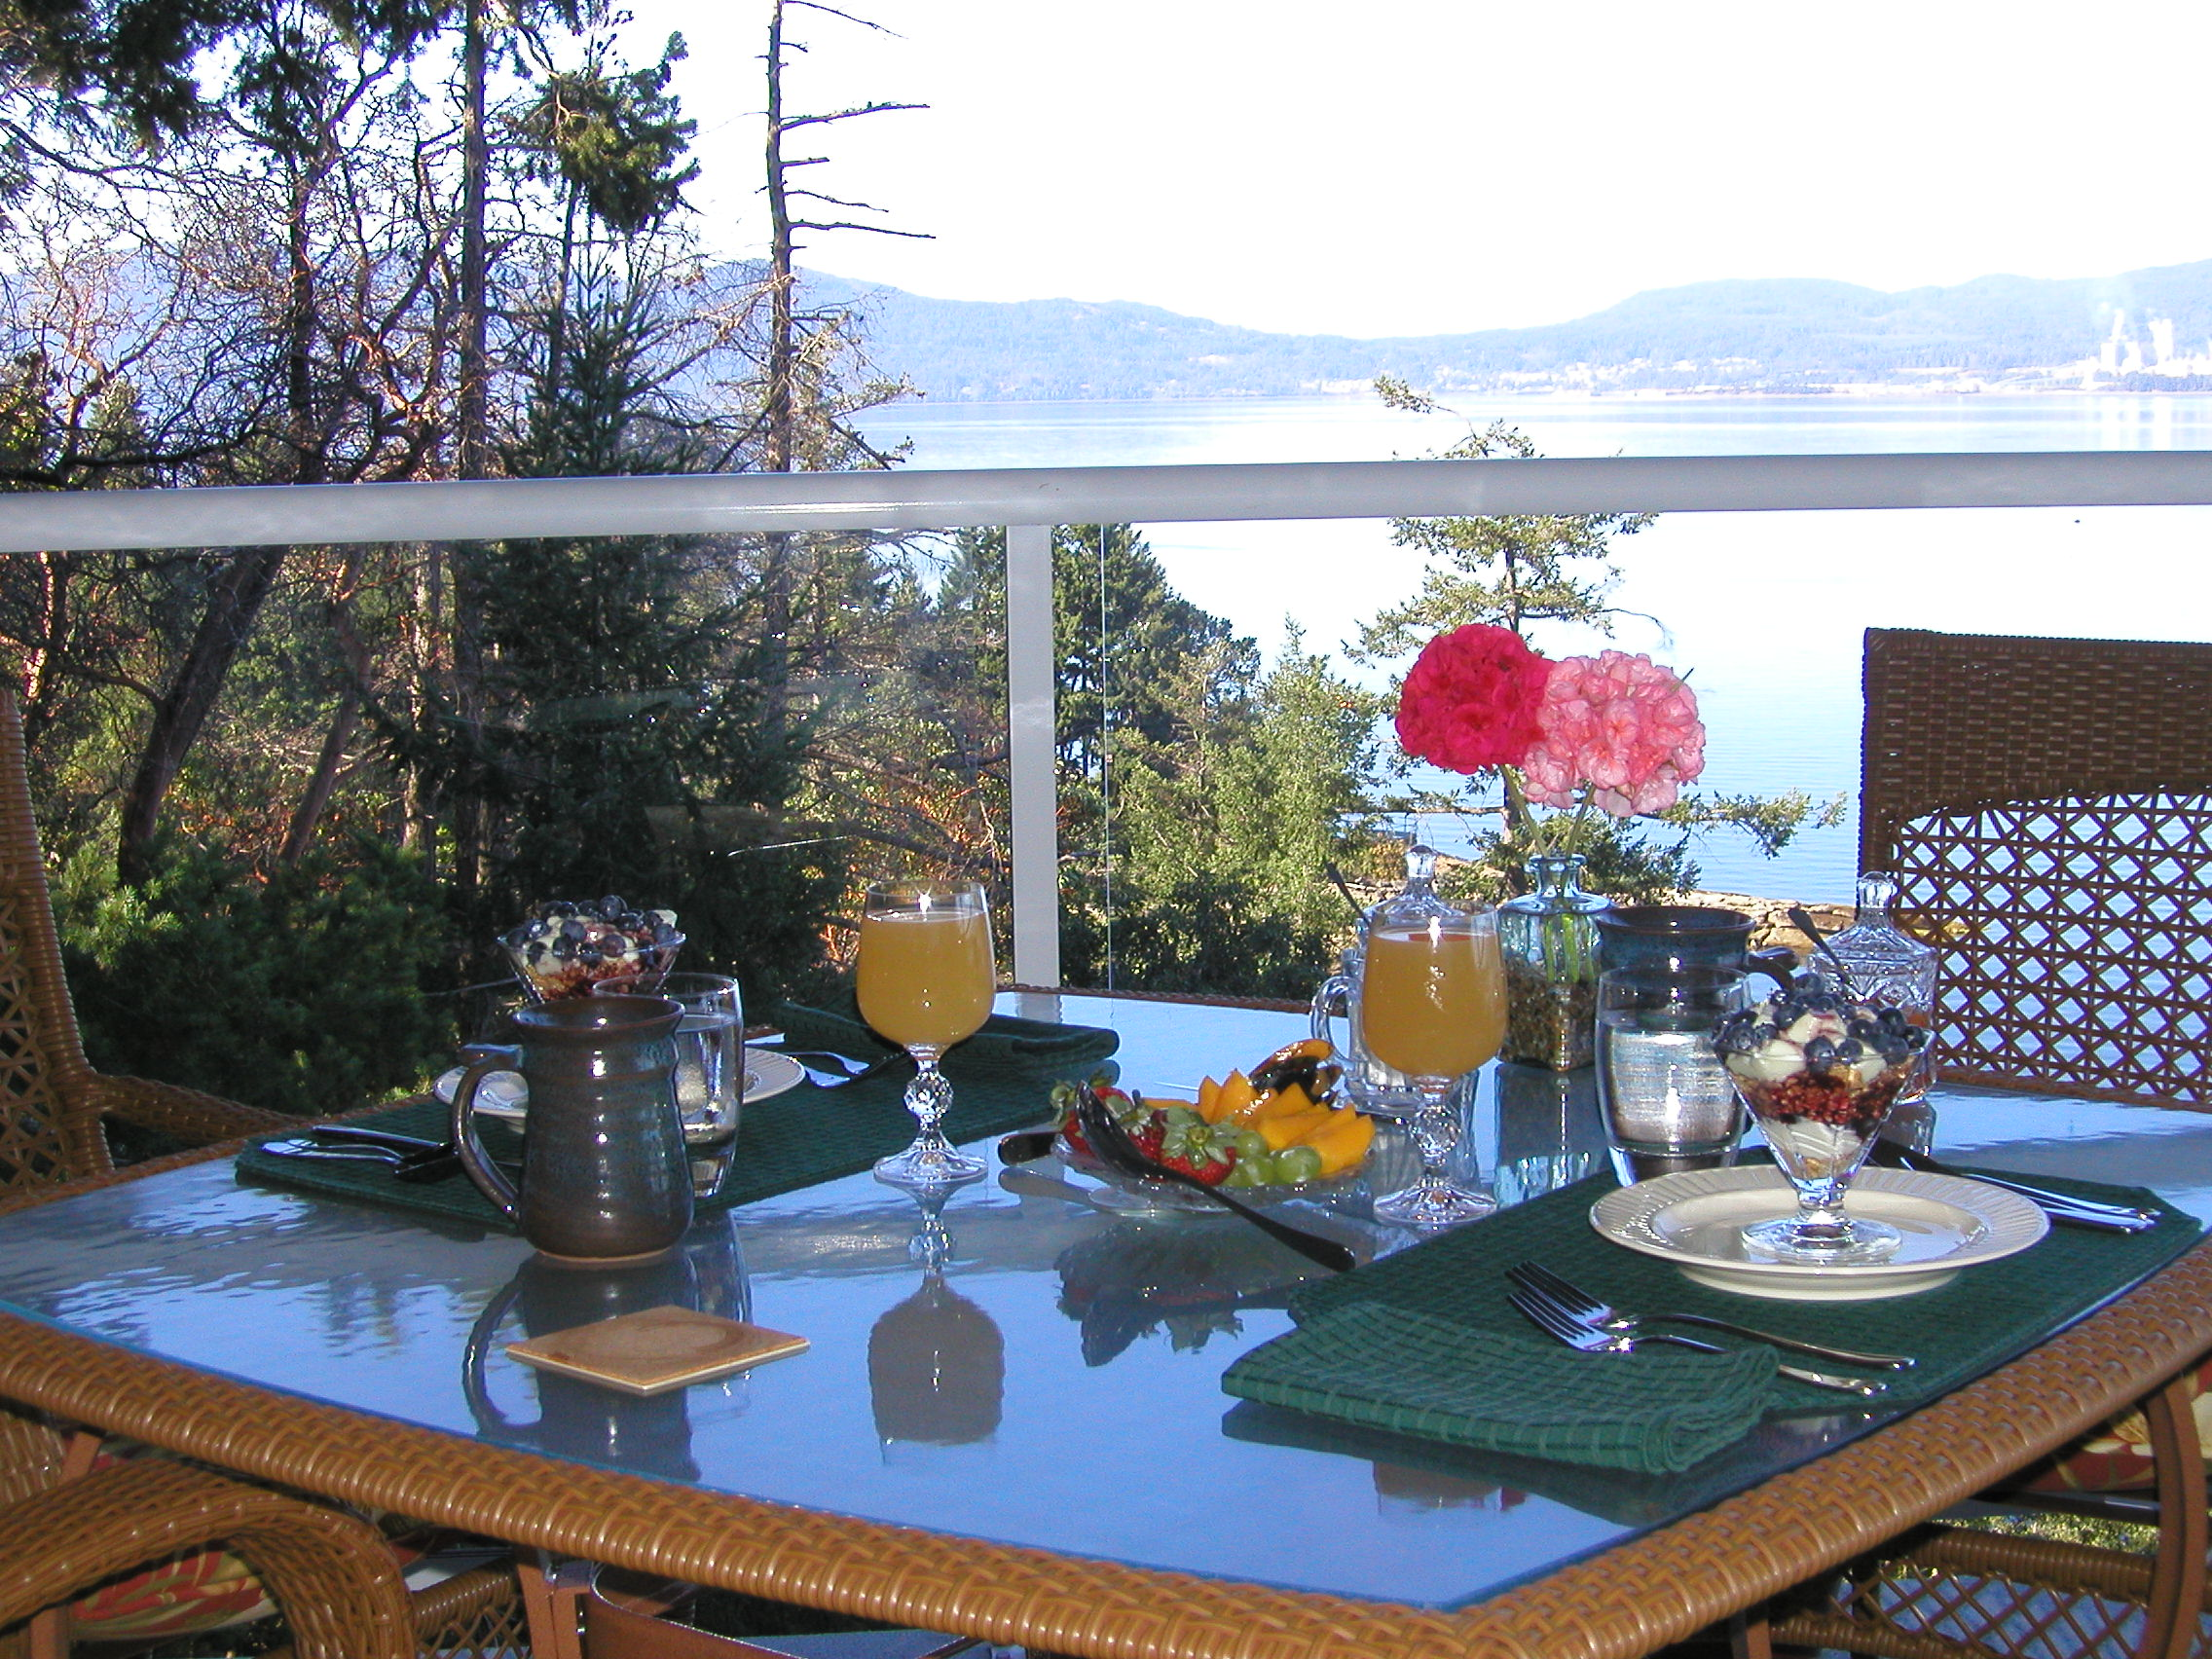 Or, I will enjoy breakfast with Rick on the deck instead of serving our guests breakfast there!